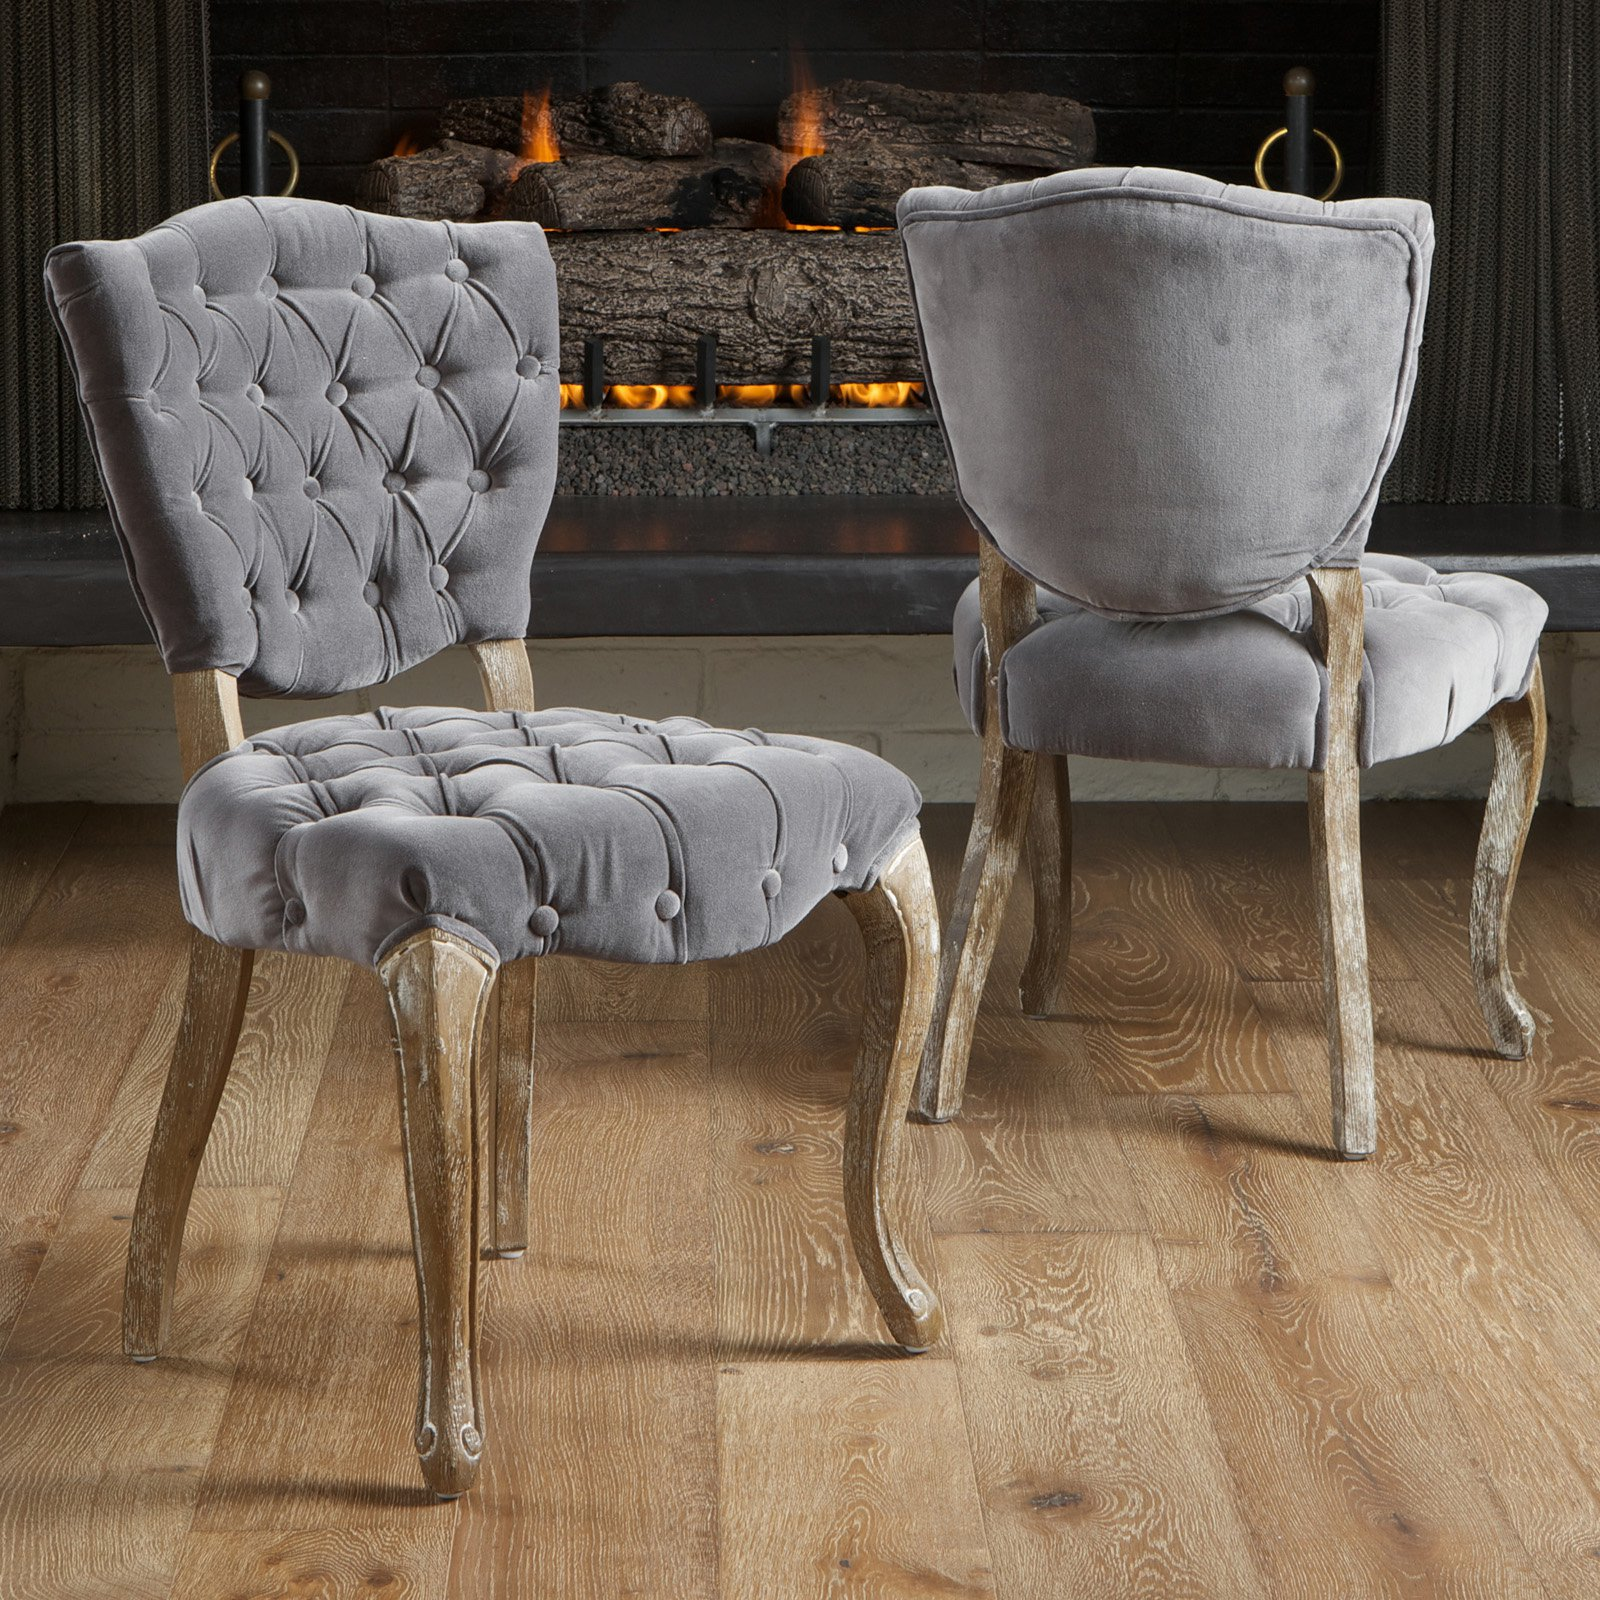 Best Selling Home Decor Middleton Tufted Grey Fabric Dining Chairs   2 Pack    Walmart.com